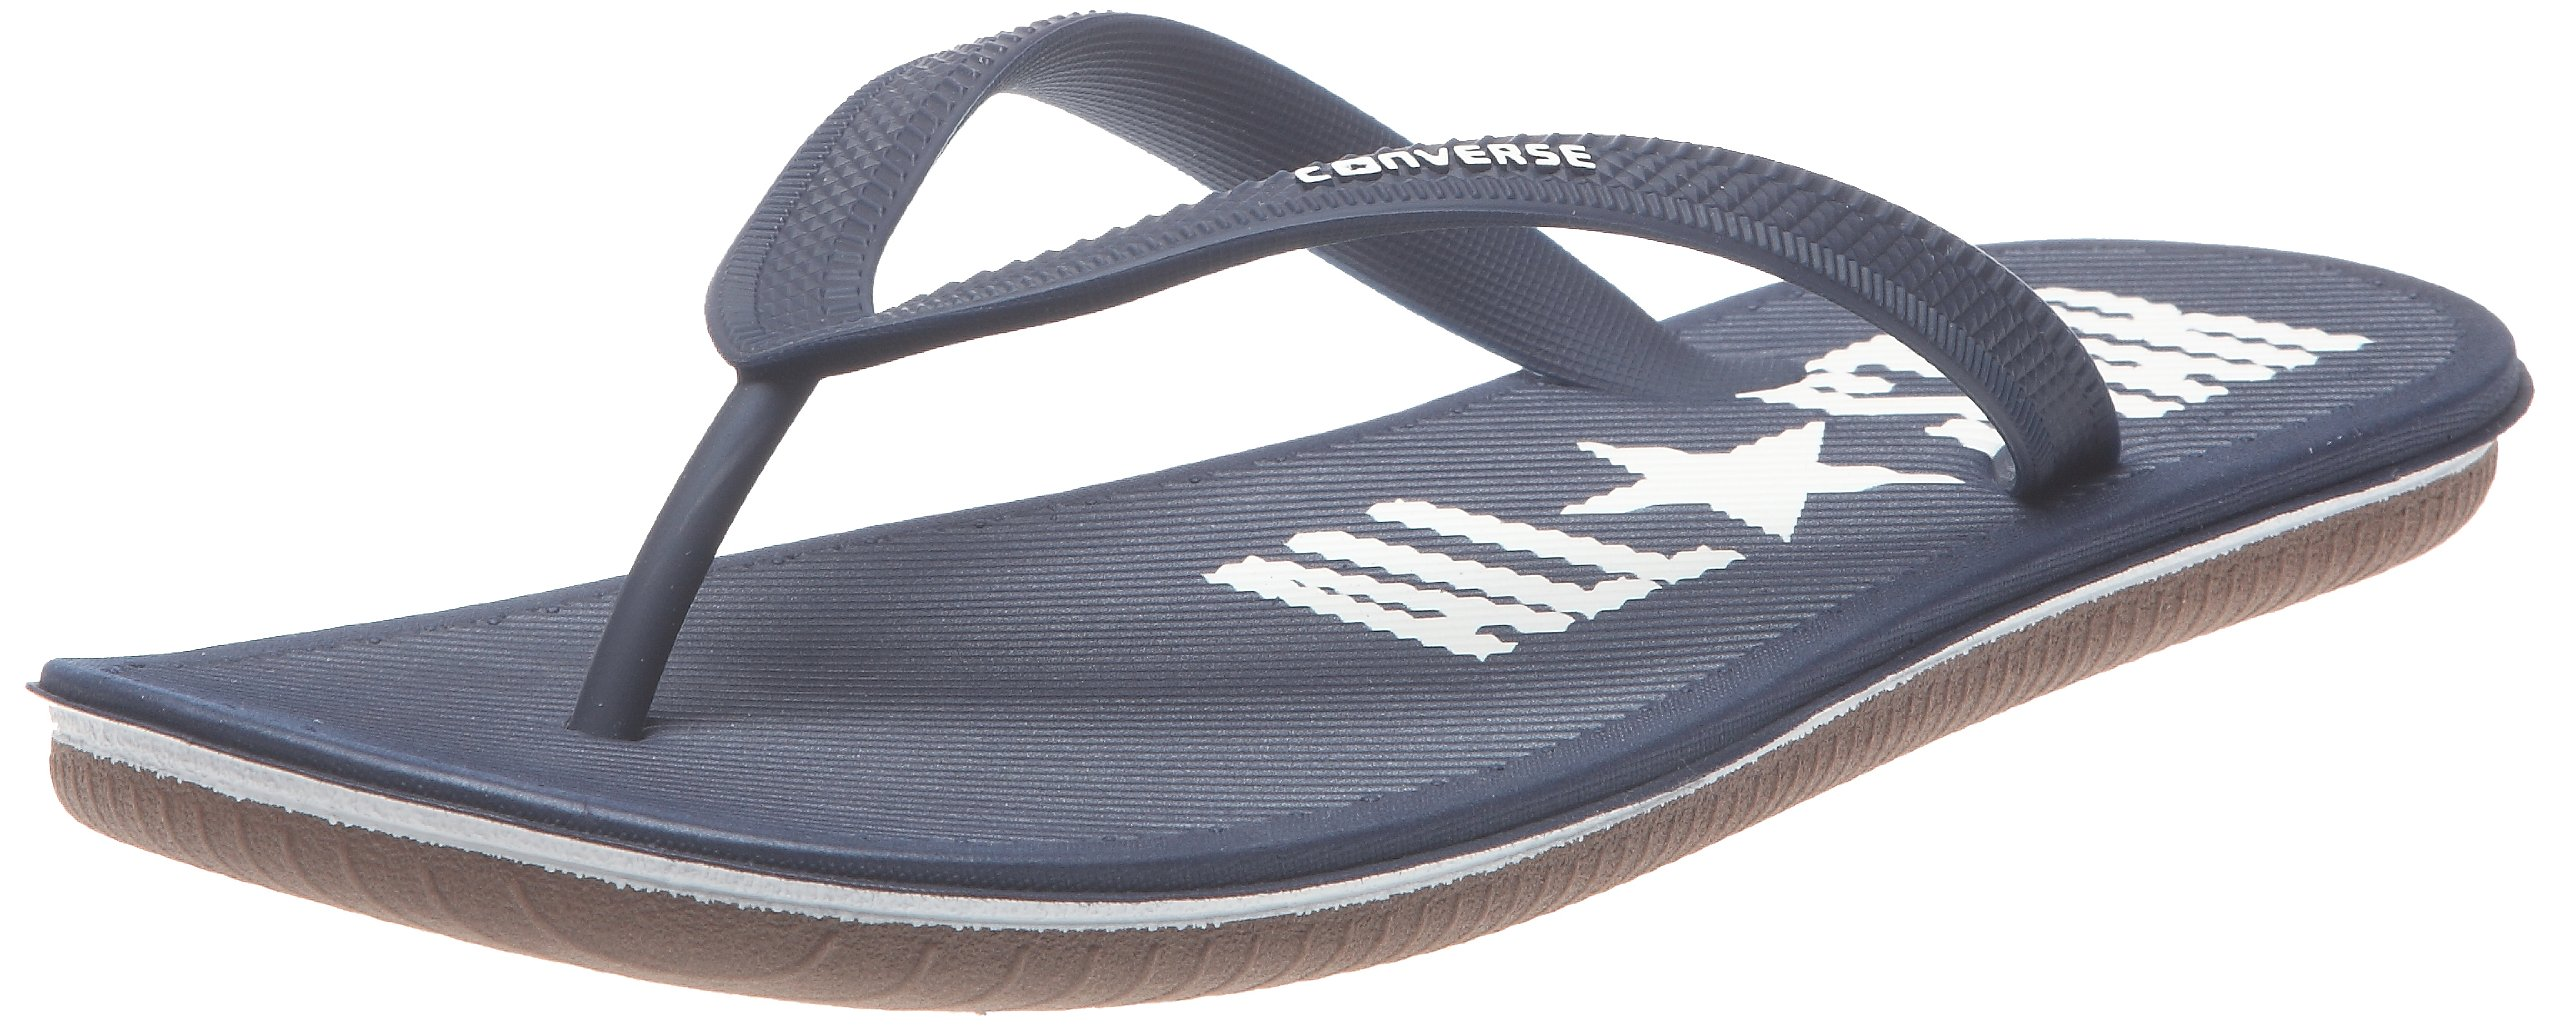 7fdd8573005 Galleon - Converse - Converse Sandstar Thong Plastic Sandals In Athletic  Navy